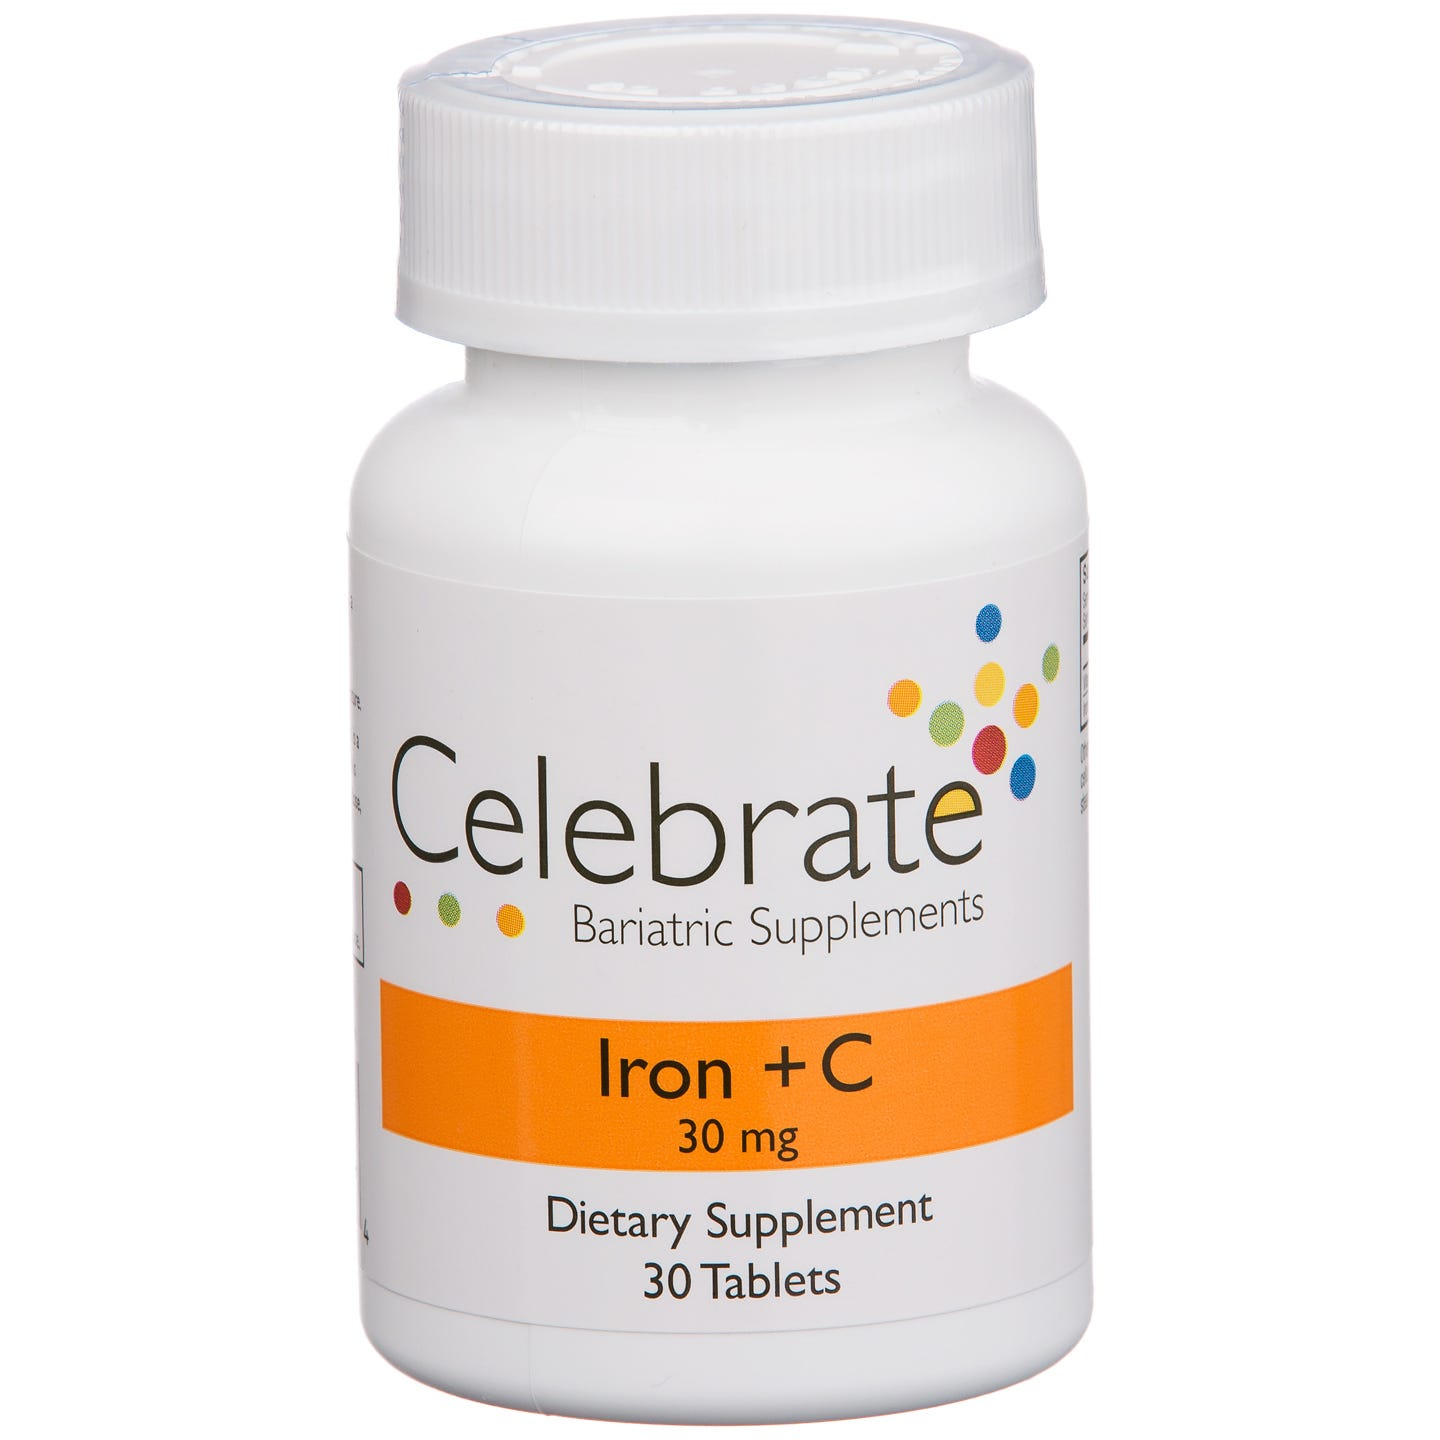 Celebrate Vitamins Iron+C 30 mg Tablet 30 Tablets Per Bottle (30 Day Supply) Gastric Bypass / Sleeve Gastrectomy One of the most common side effects of weight loss surgery is an iron deficiency. To reduce that possibility and to ensure your health, Celebrate has formulated one of the most effective iron products available. Carefully selecting the most bioavailable forms of iron and then coupling them with additional benefits they have developed an iron